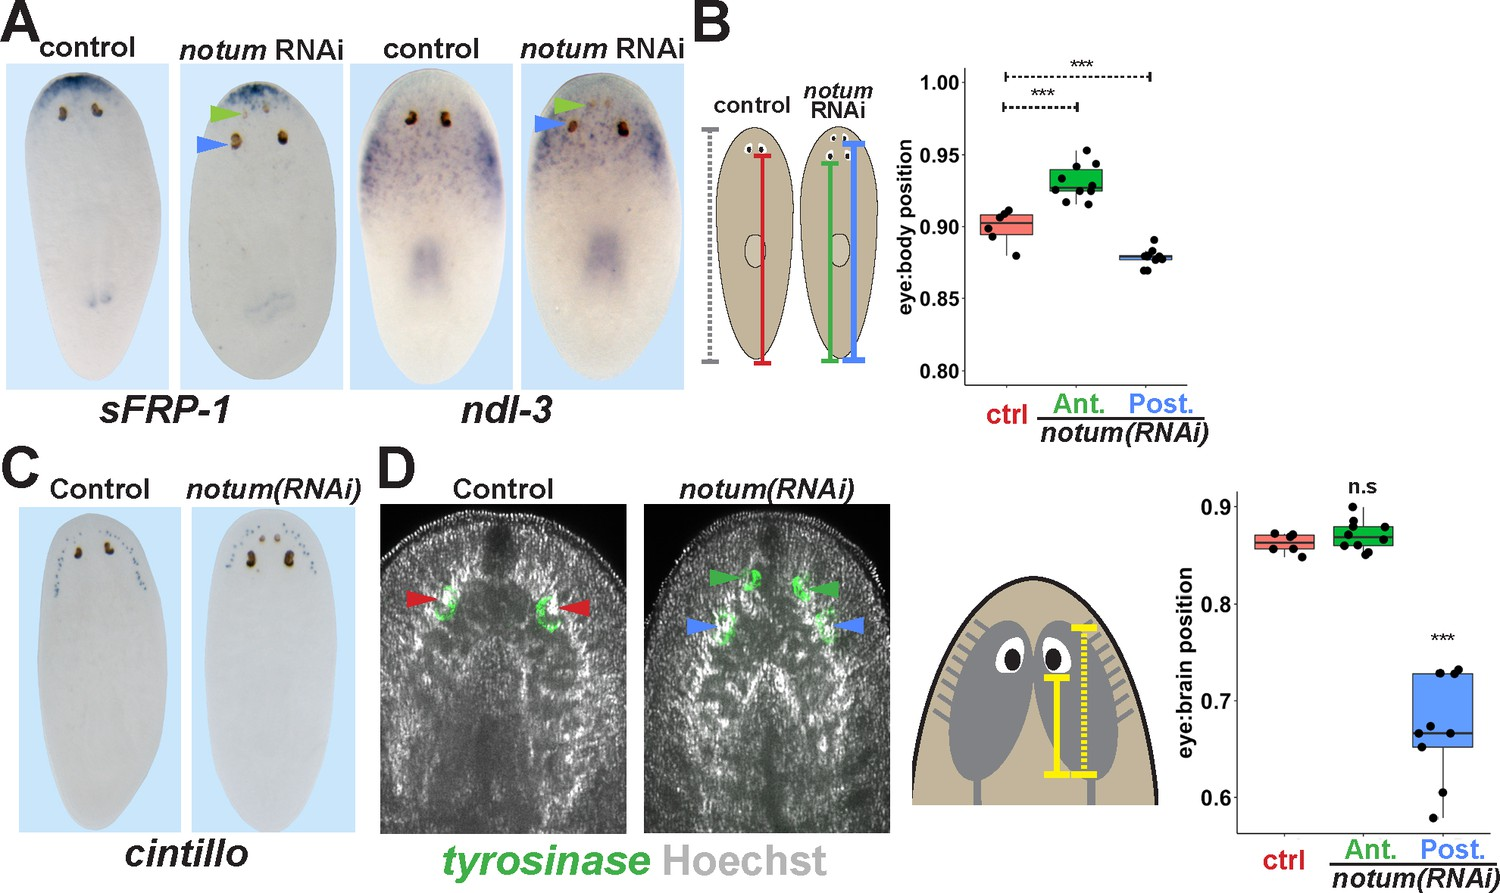 non-regenerative eyes are mispositioned with respect to positional control  genes and the brain